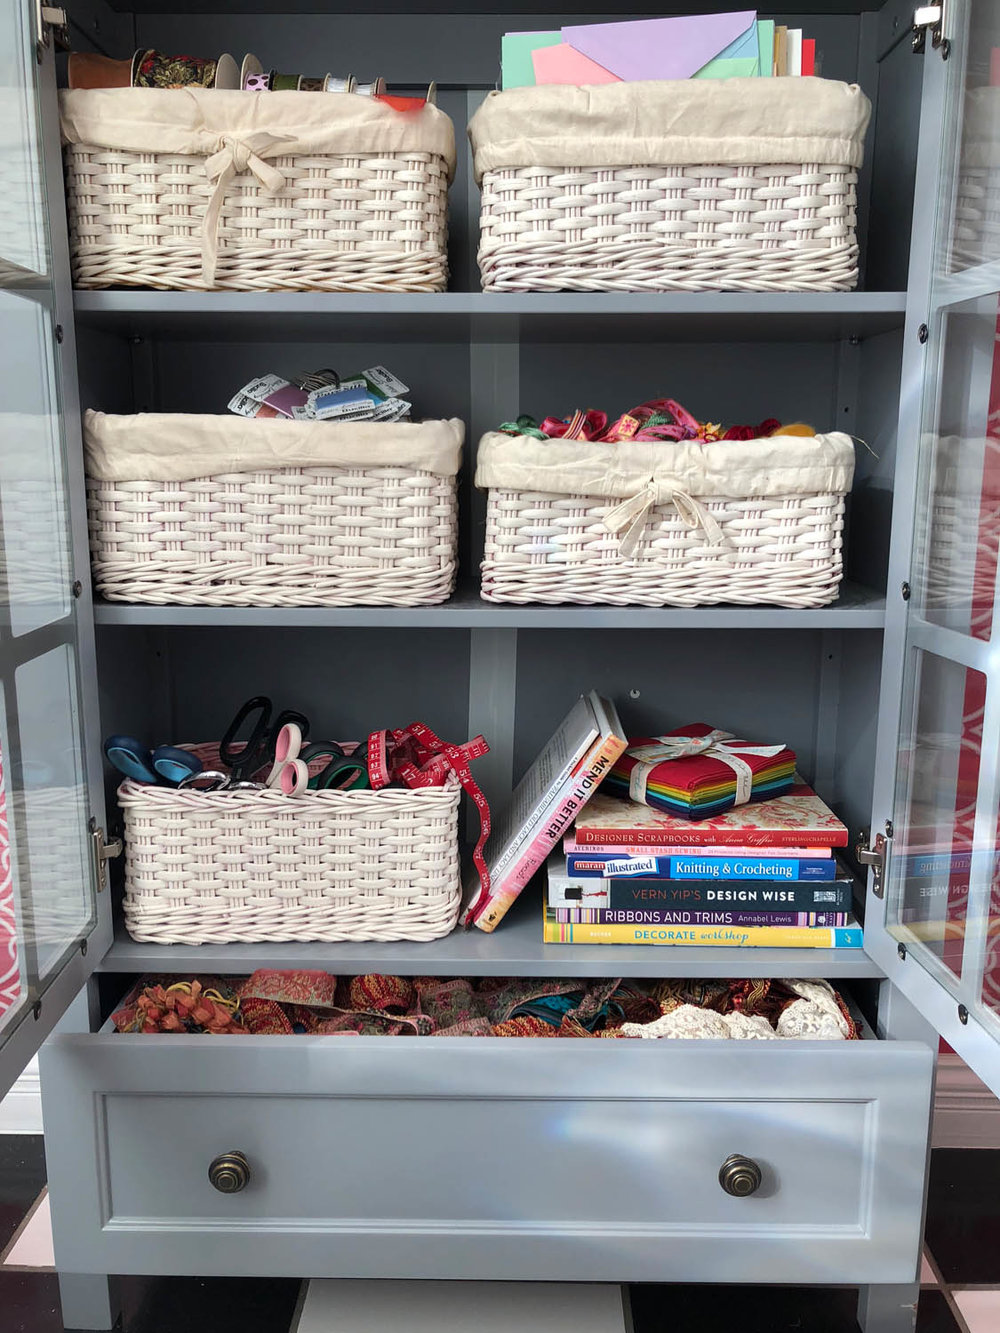 Painted craft storage baskets in glass-doored bookshelf